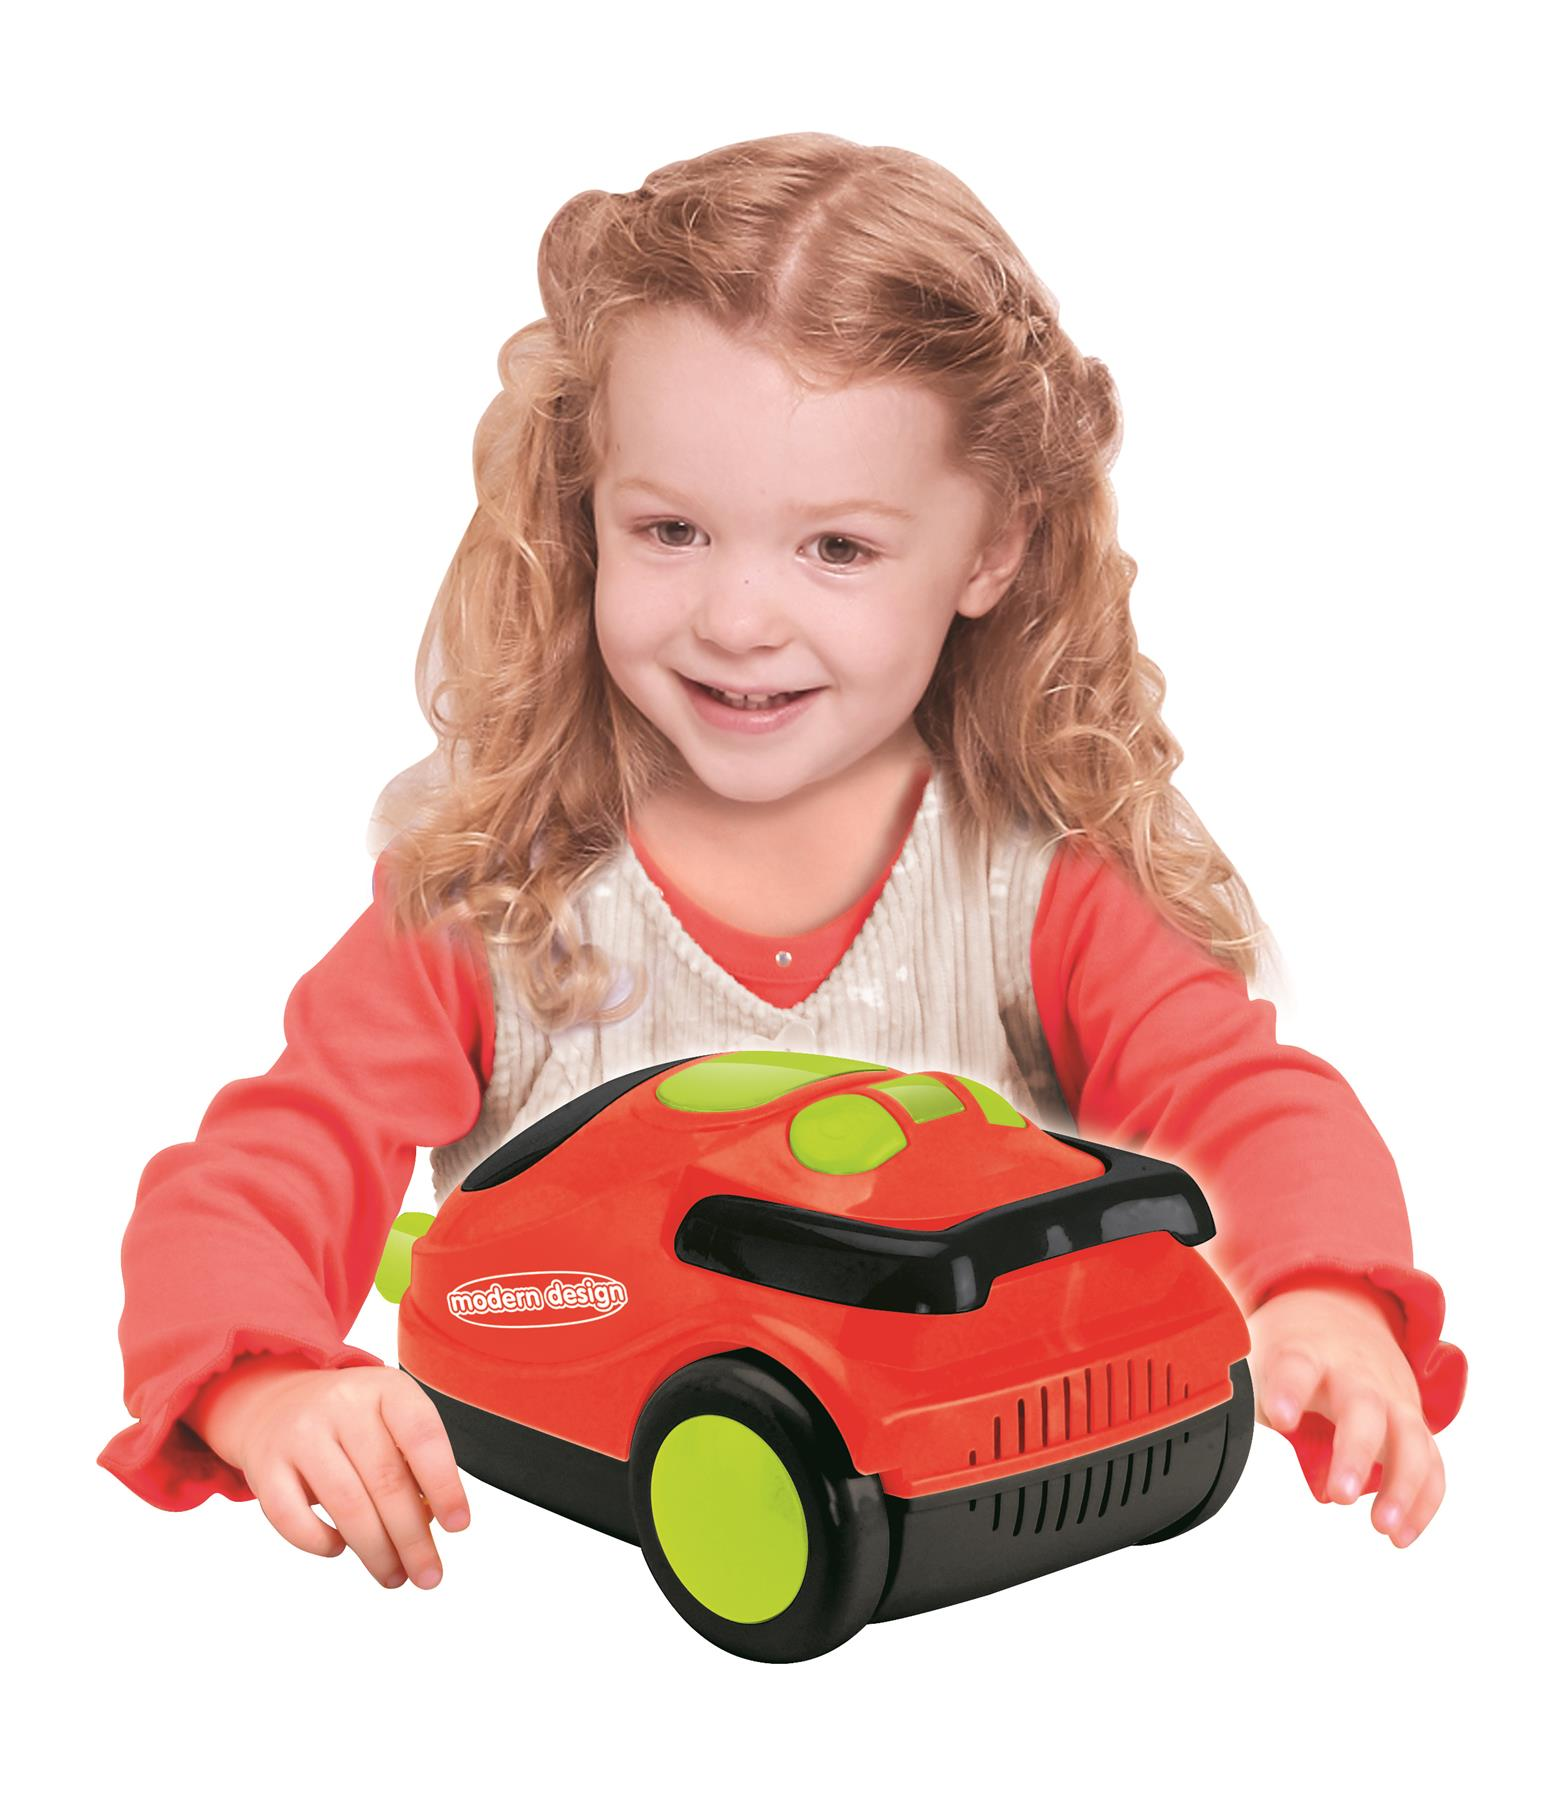 Kids Role Play Vacuum Cleaner Hoover Realistic Toy Red with Lights /& Sounds 546